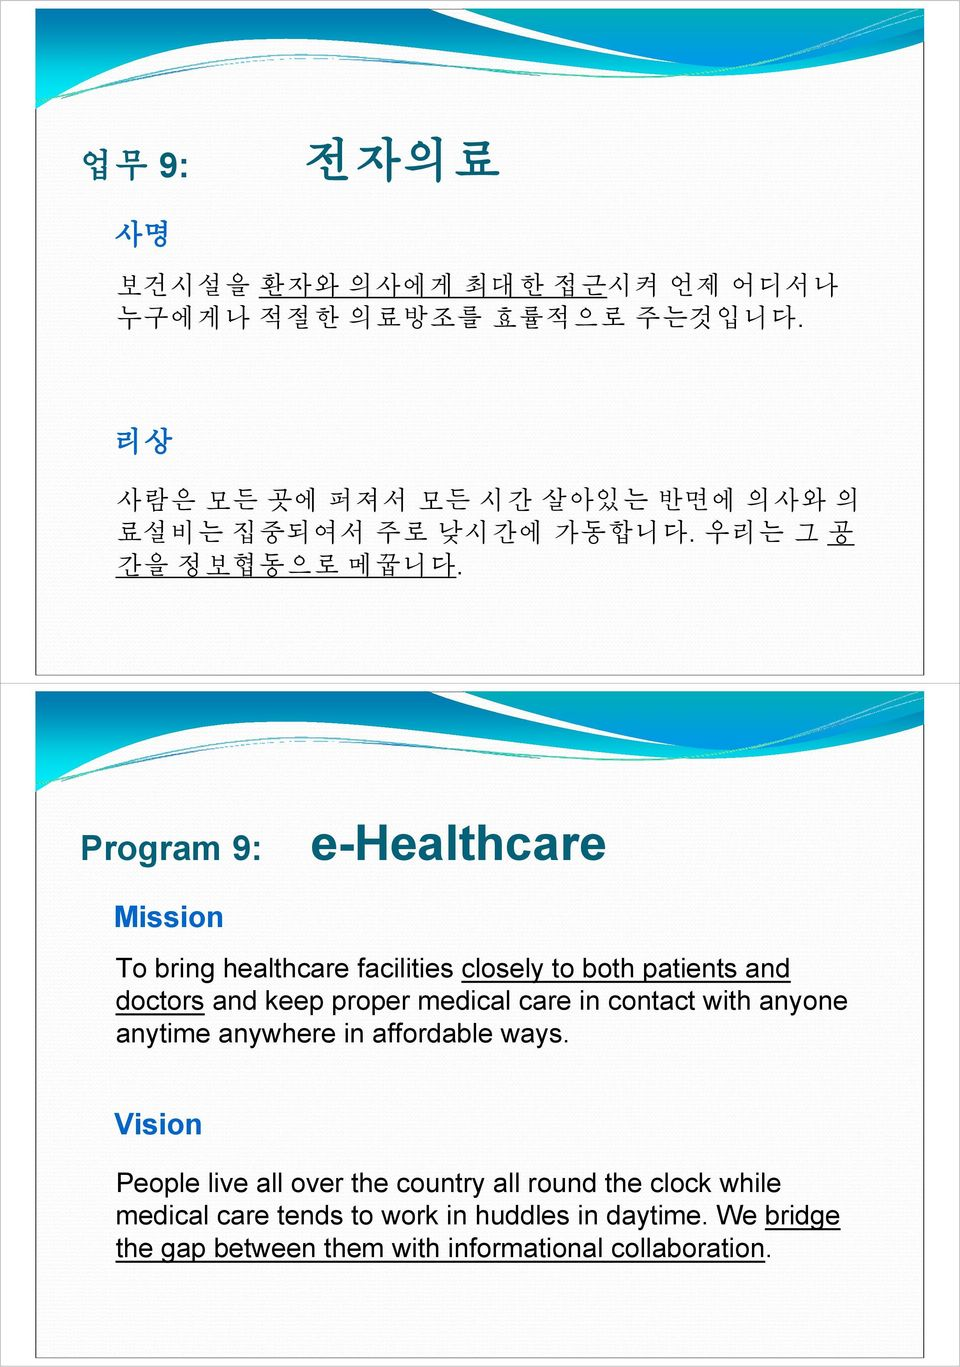 Program 9: e-healthcare Mission To bring healthcare facilities closely to both patients and doctors and keep proper medical care in